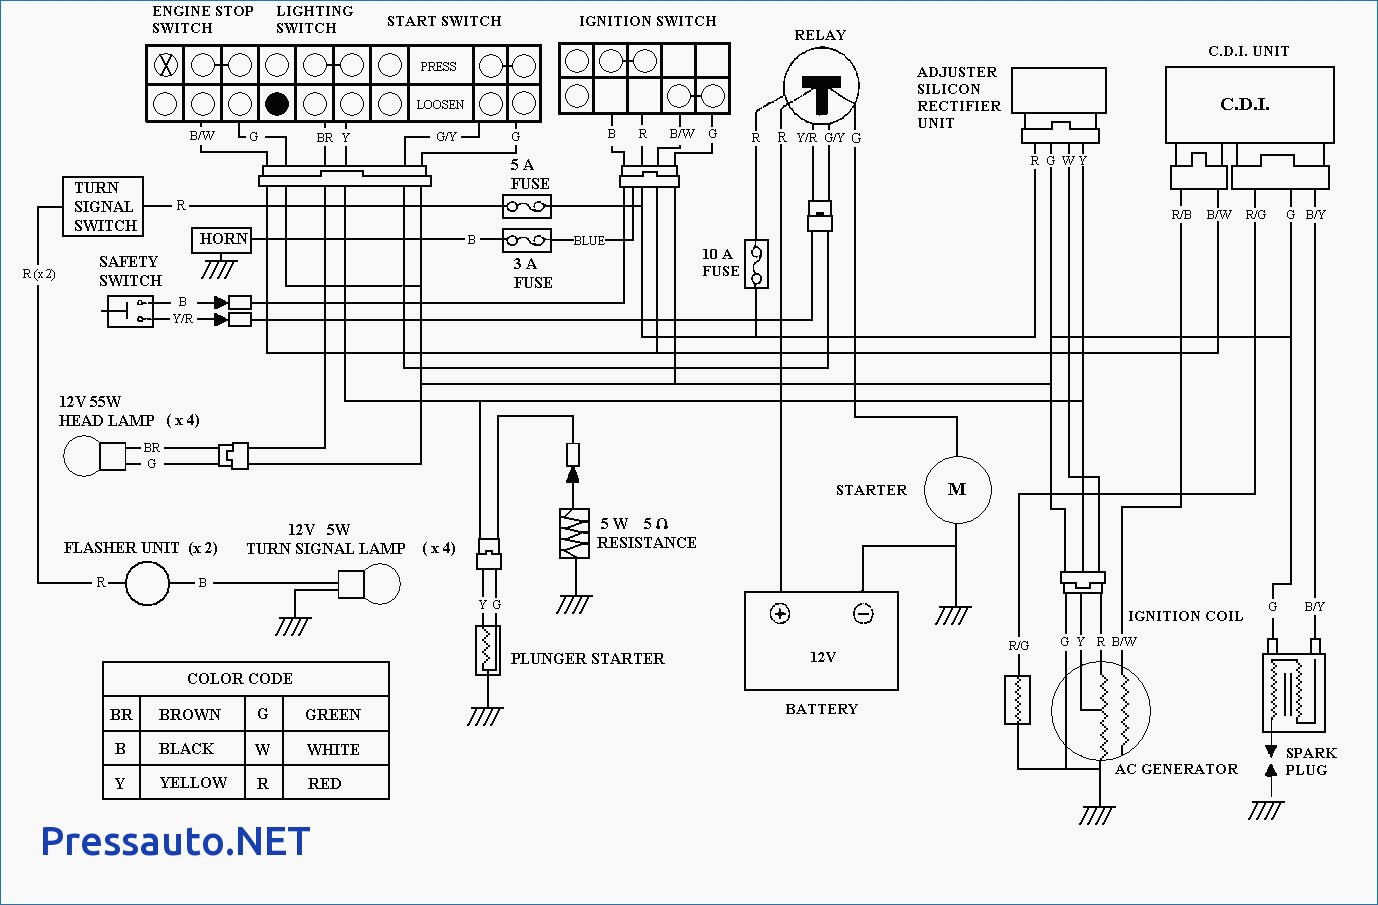 systems wiring diagrams as well as 250cc chinese atv wiring diagram